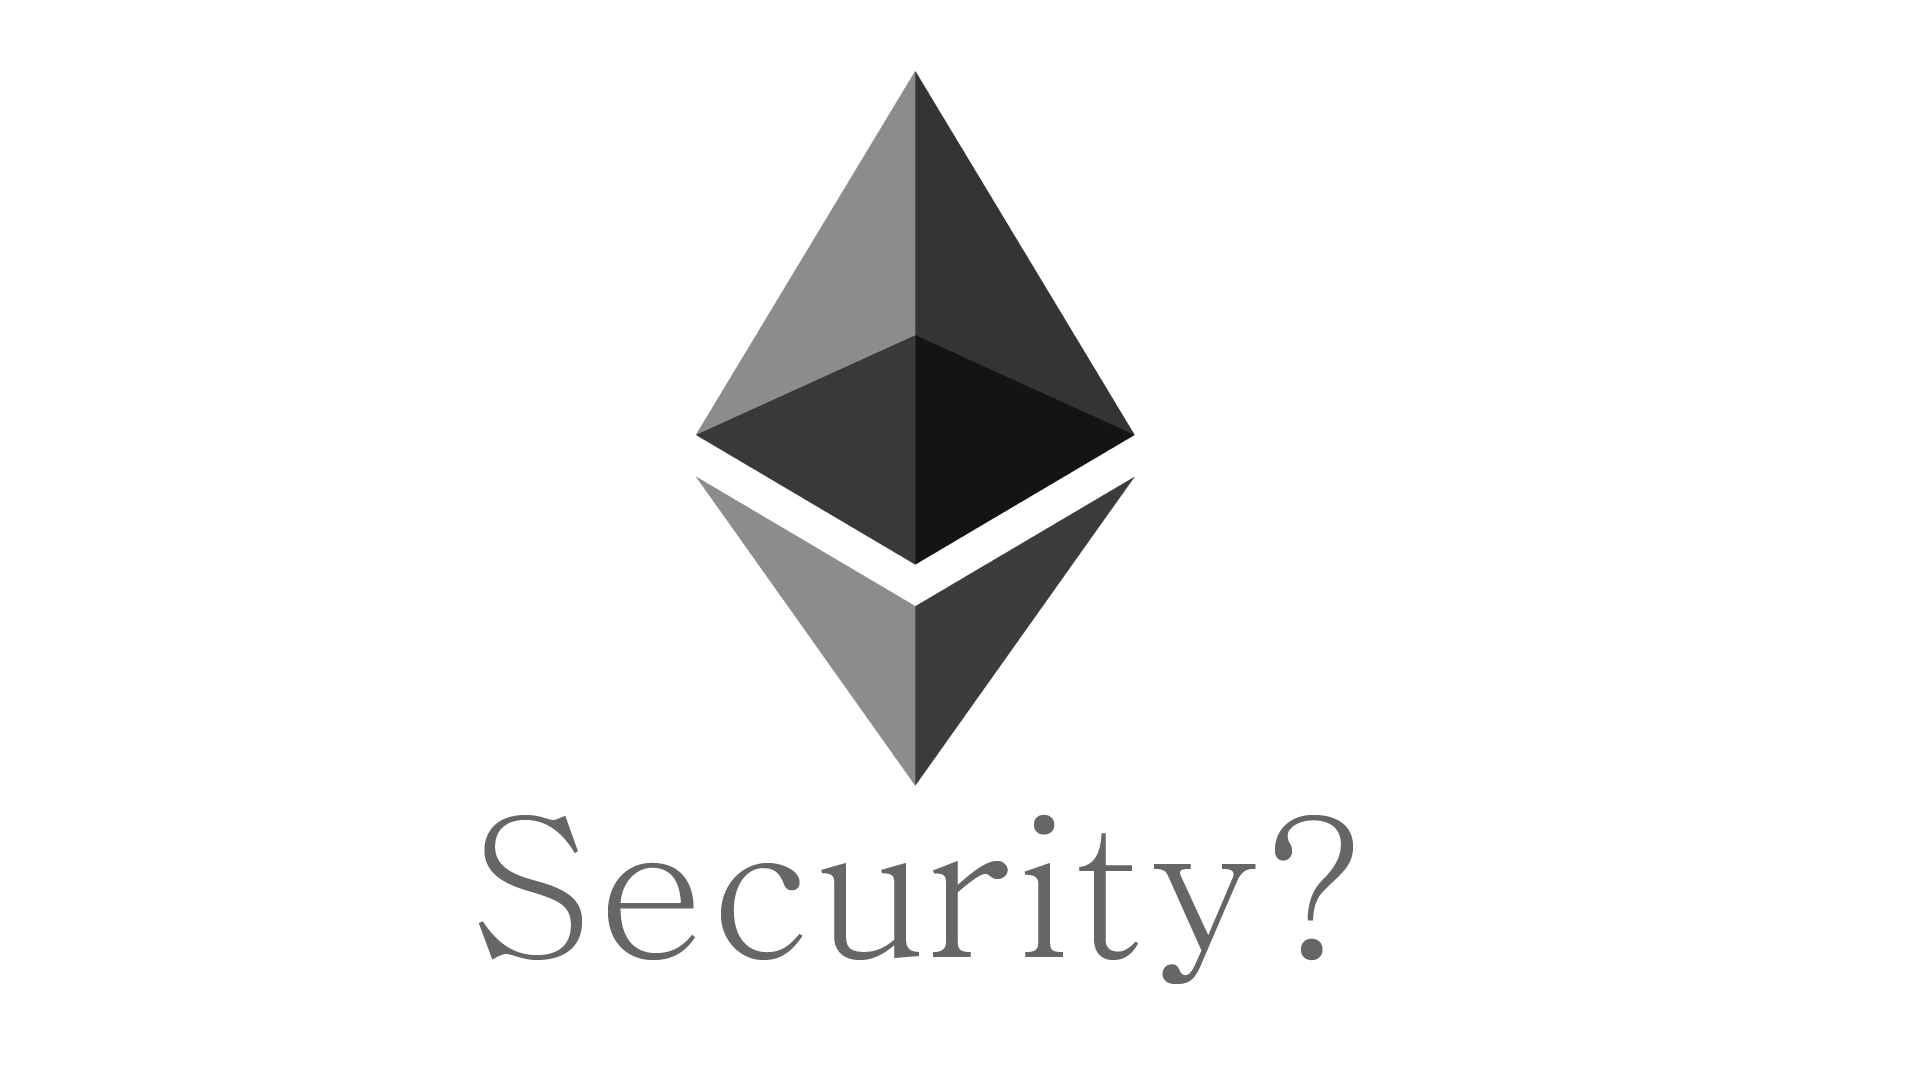 Is Ethereum a security?